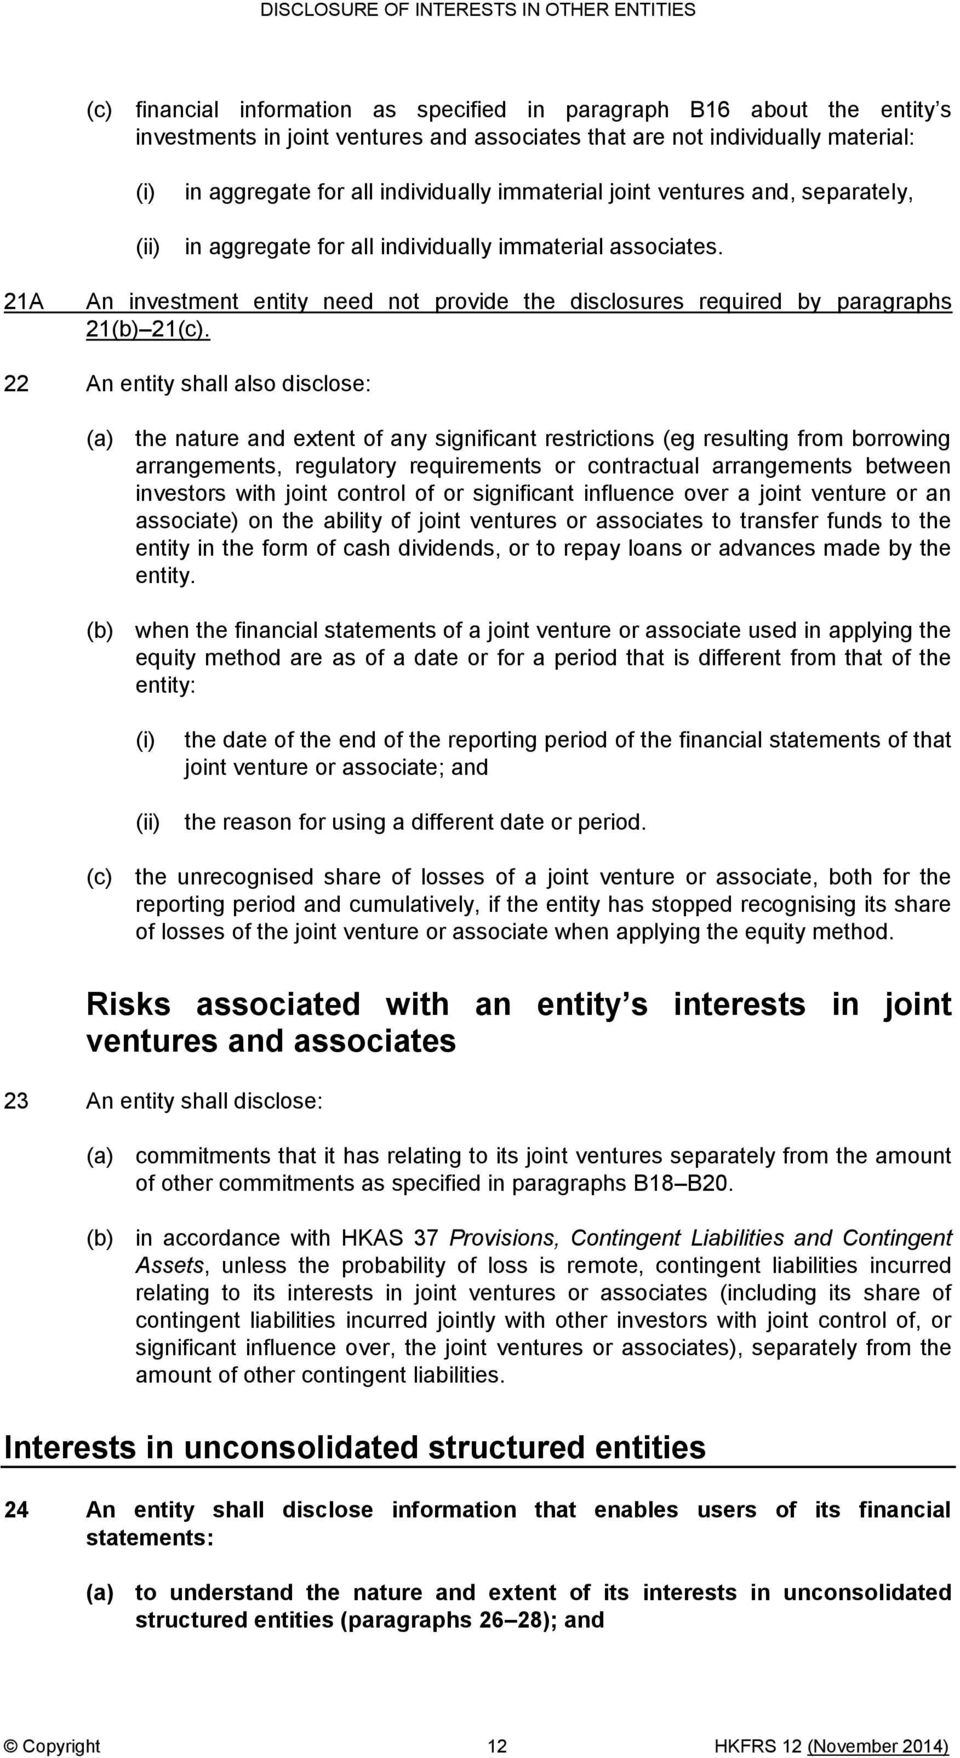 22 An entity shall also disclose: (a) the nature and extent of any significant restrictions (eg resulting from borrowing arrangements, regulatory requirements or contractual arrangements between